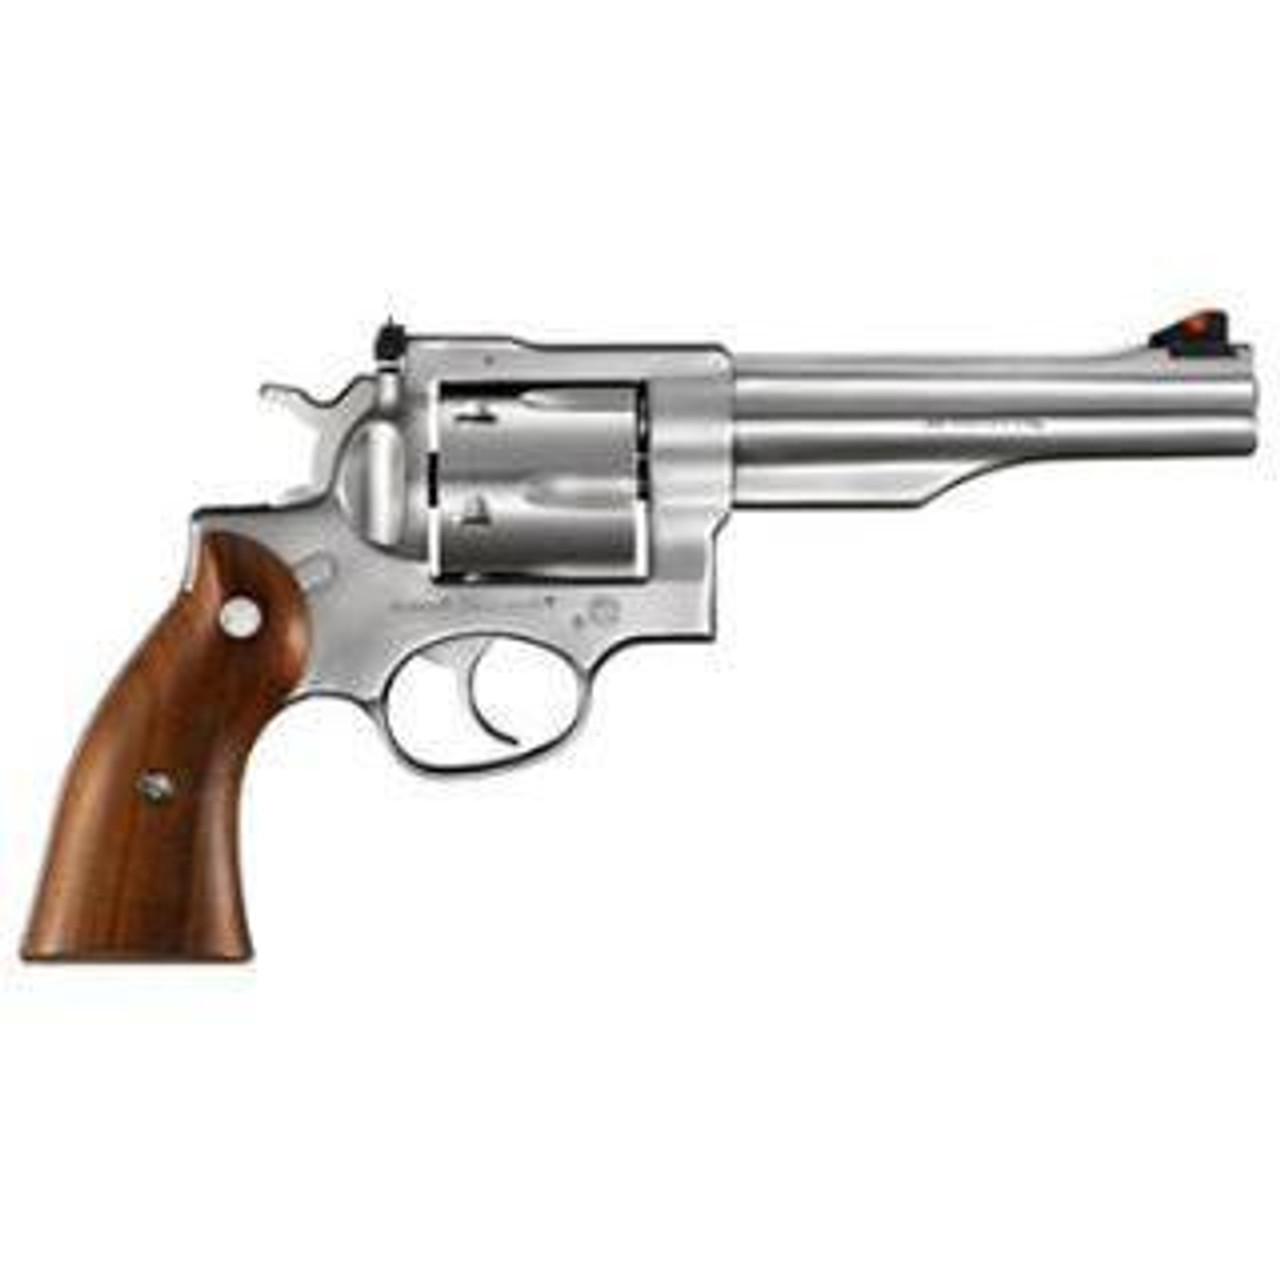 "Ruger Redhawk 5.5"" .44 Magnum - California Legal"